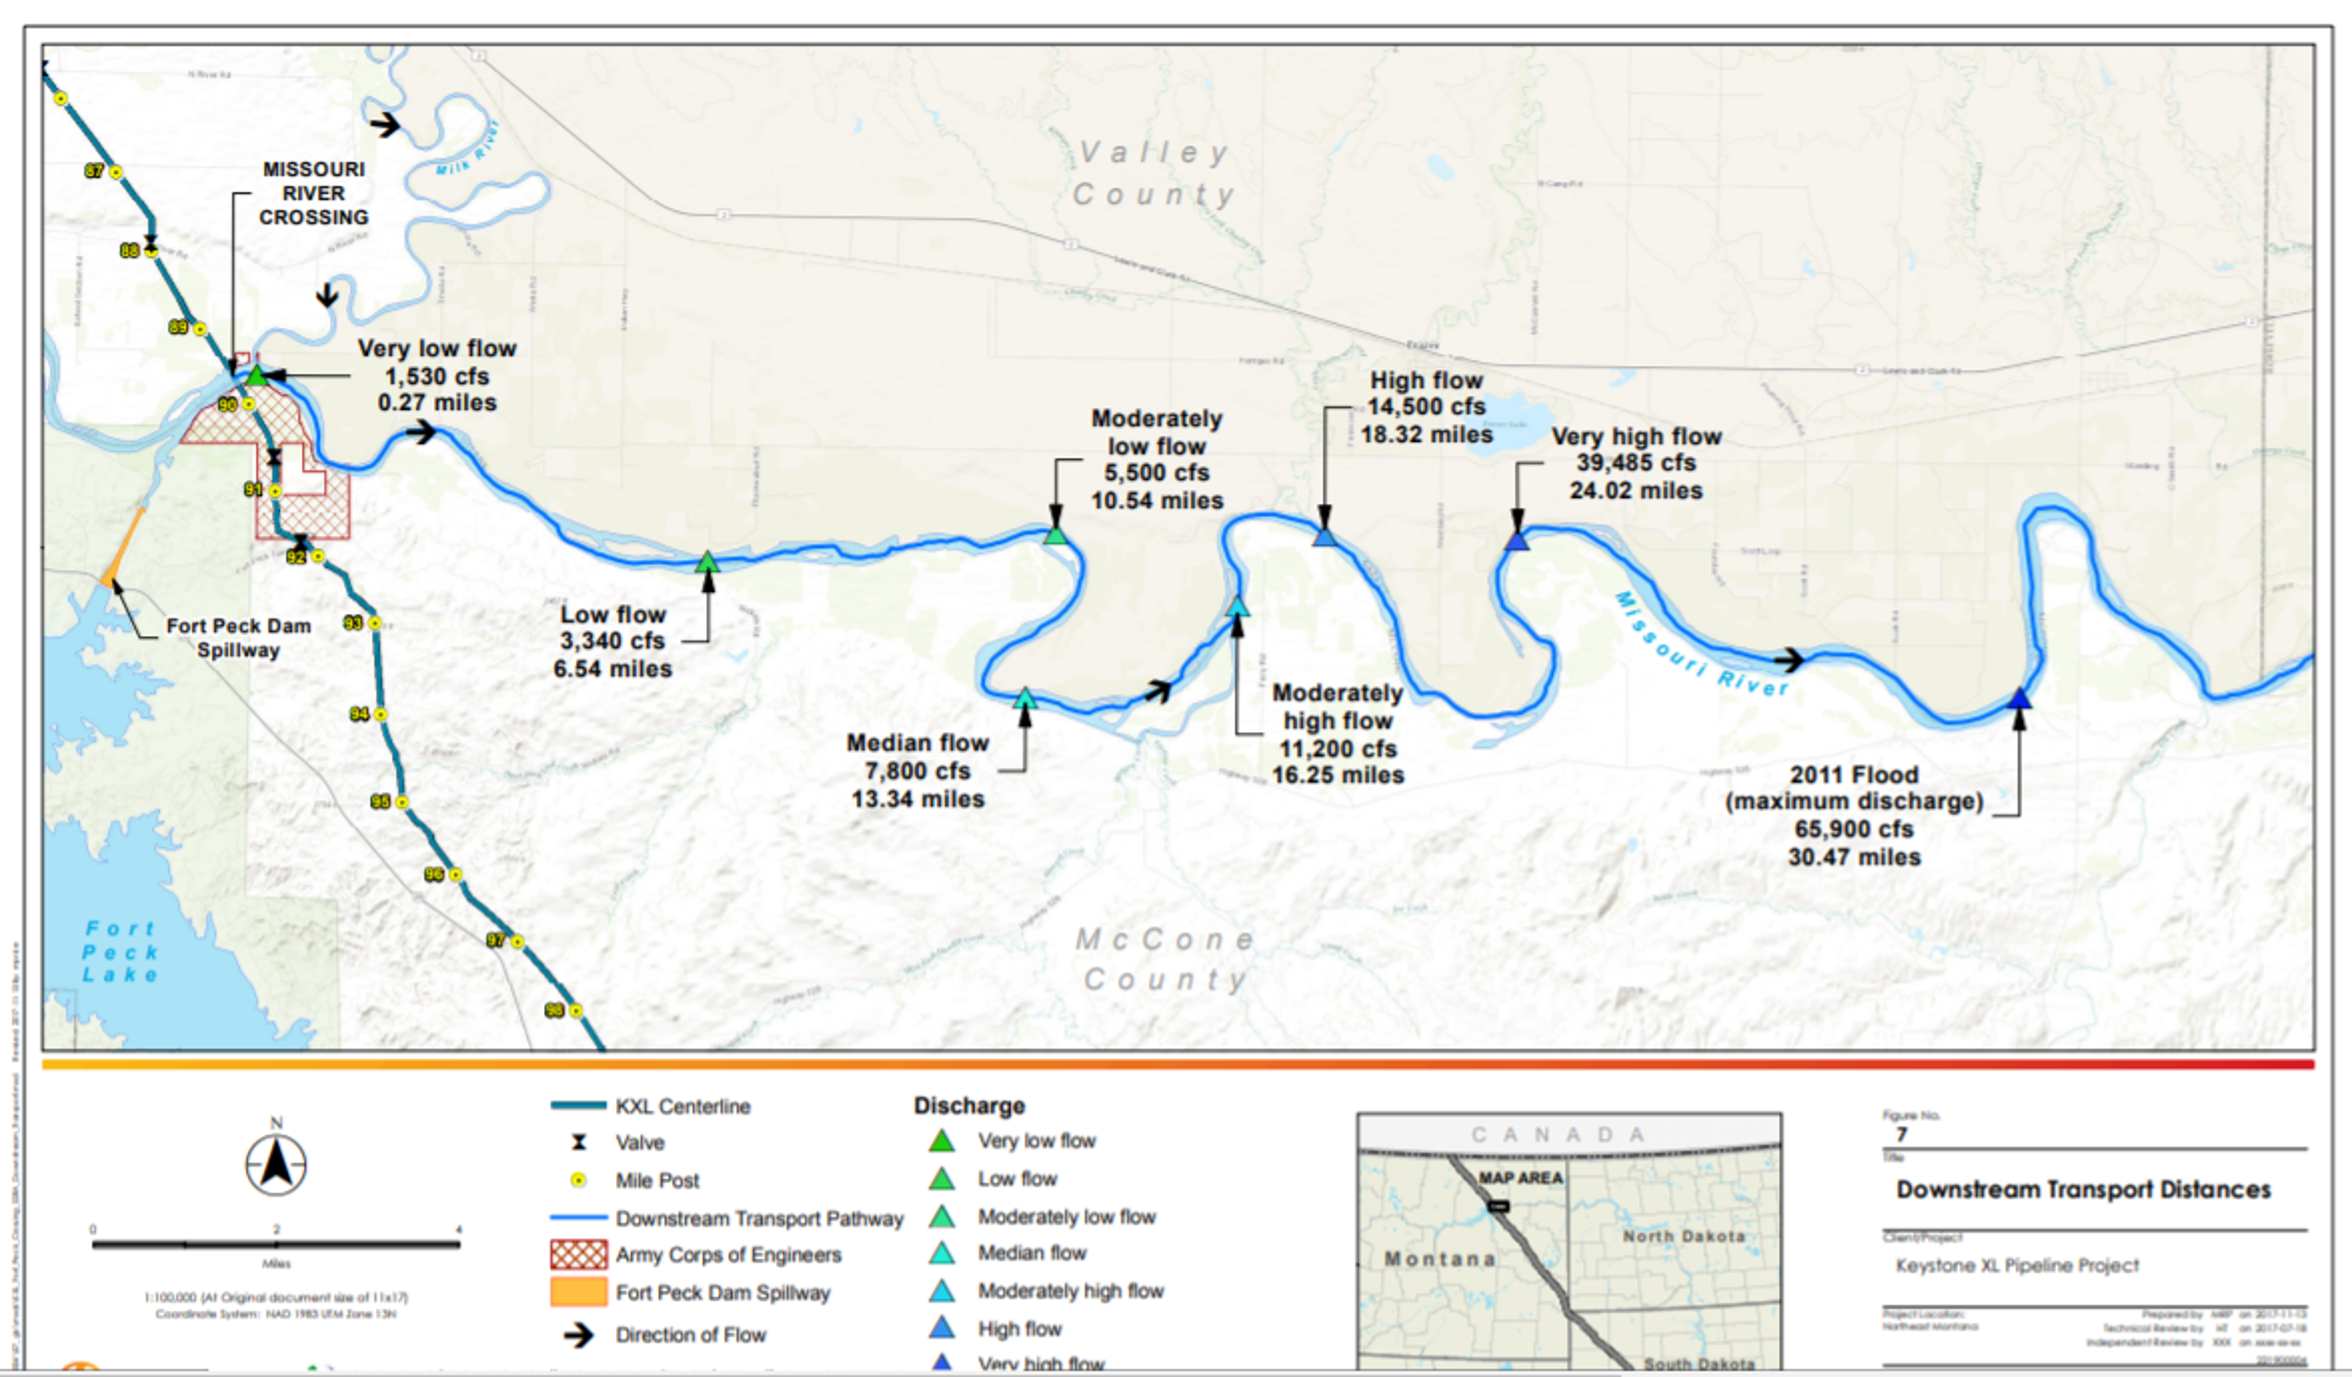 Yellowstone River Access Map on buffalo river access map, delaware river access map, des moines river access map, firehole river map, weber river fishing access map, gallatin river fishing access map, yellowstone road map, yellowstone camping map, trinity river access map, blackfoot river access map, gasconade river access map, san joaquin river access map, yellowstone visitor center map, big hole river access map, salmon river access map, yellowstone fishing map, yellowstone park map, beaverhead river access map, yellowstone lodging map, teton river access map,